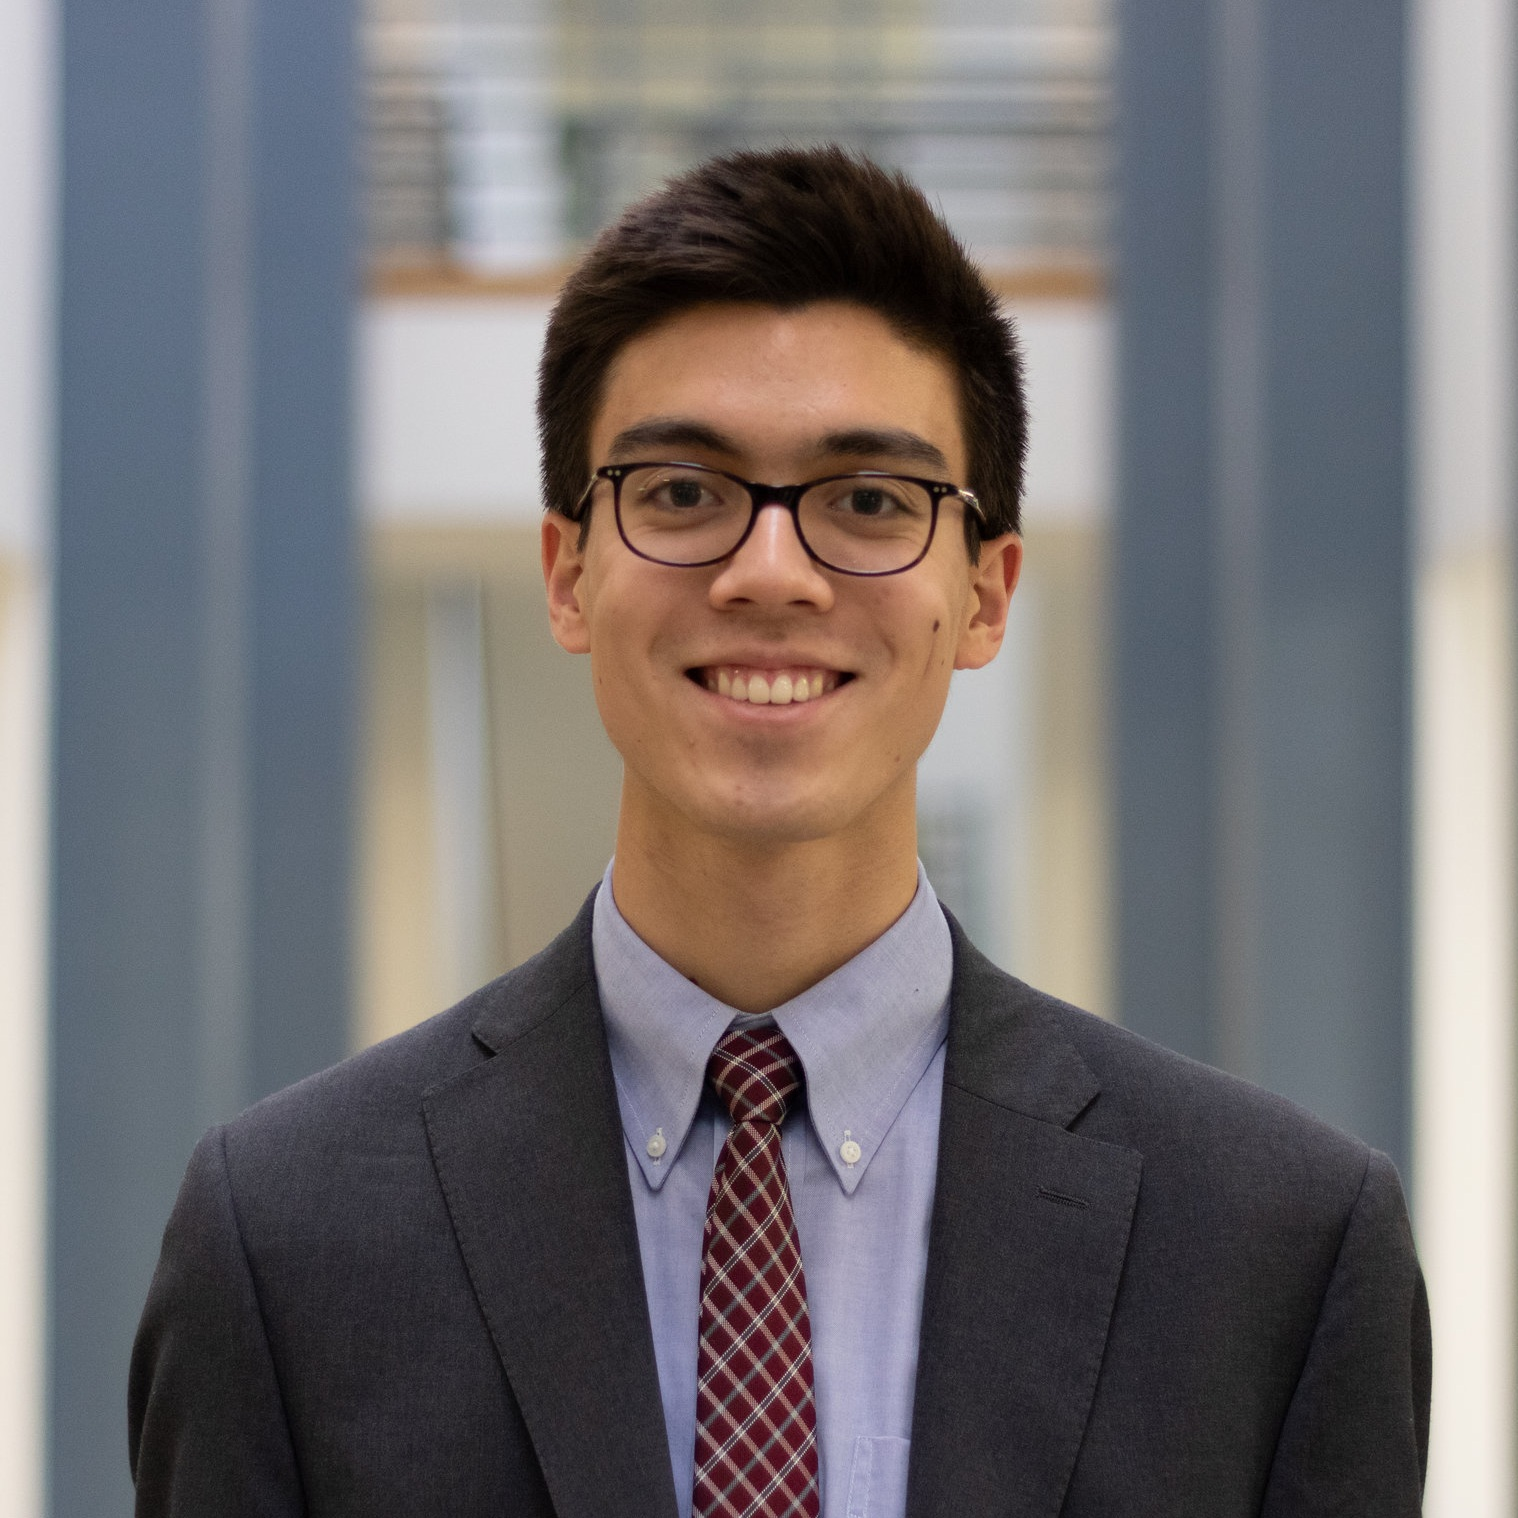 INDUSTRIAL SYSTEMS ENGINEERING & FINANCE, IBE 2021   Andrew joined LCG in the fall of 2018, first starting on an Analyst project to expand LCG's project base by researching and networking with other schools. After his first semester, he transitioned to Director of Finance, where he will be in charge of sourcing funding from external and internal resources, planning expenditures for LCG events, and organizing new ways to expand the club. Last summer, Andrew interned at Merrill Lynch in a Wealth Management Branch.  This summer, he will be interning abroad in a Shanghai technology firm as a Tauck Scholar.